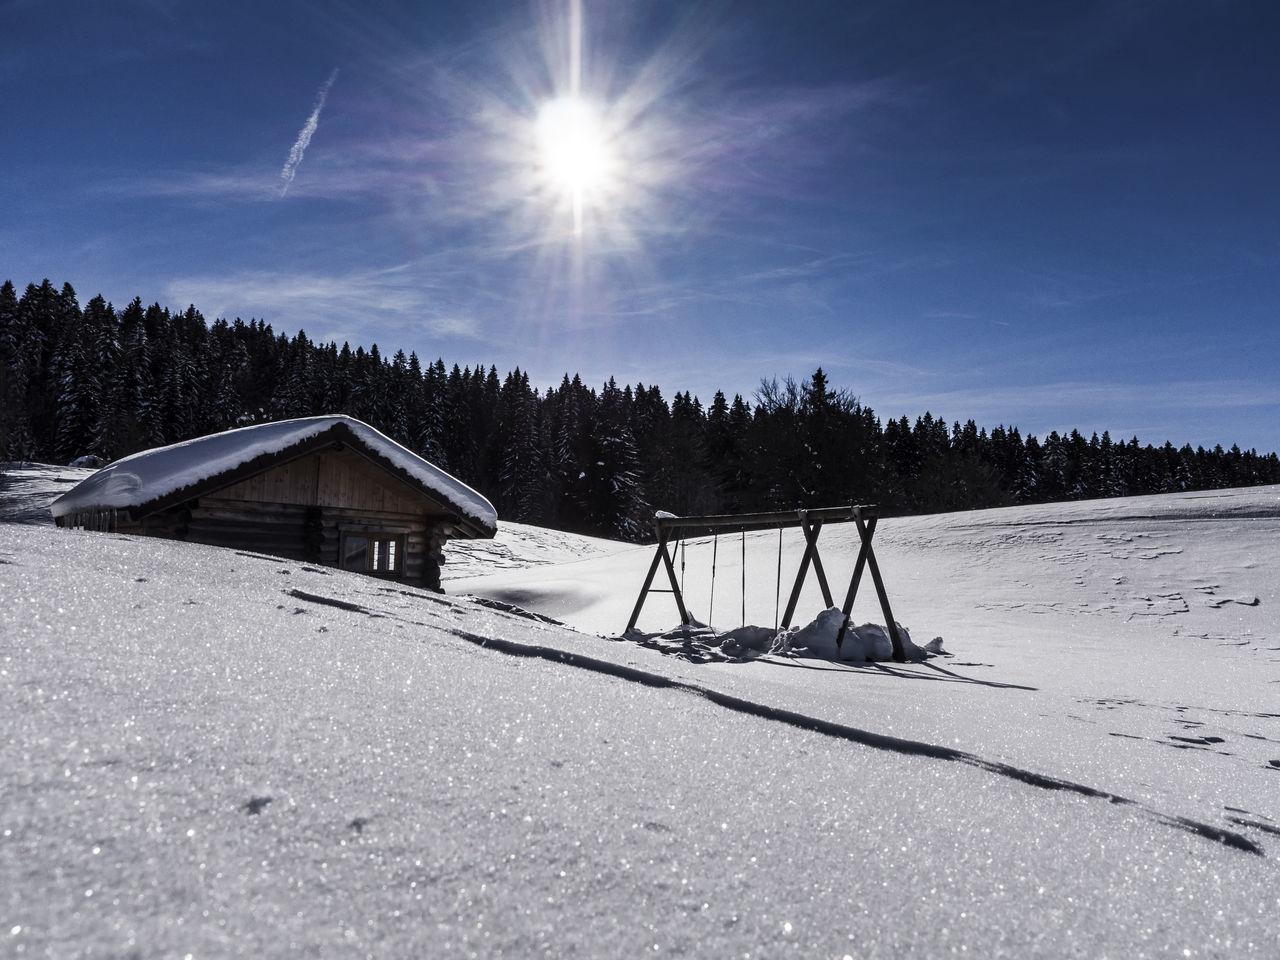 Beauty In Nature Cabin Chalet Cold Temperature Day The Great Outdoors - 2017 EyeEm Awards Landscape Landscape_Collection Lens Flare Nature Nature_collection No People Outdoors Scenics Seesaw Sky Snow Sun Sunbeam Sunlight Swing Tranquil Scene Tranquility Tree Winter